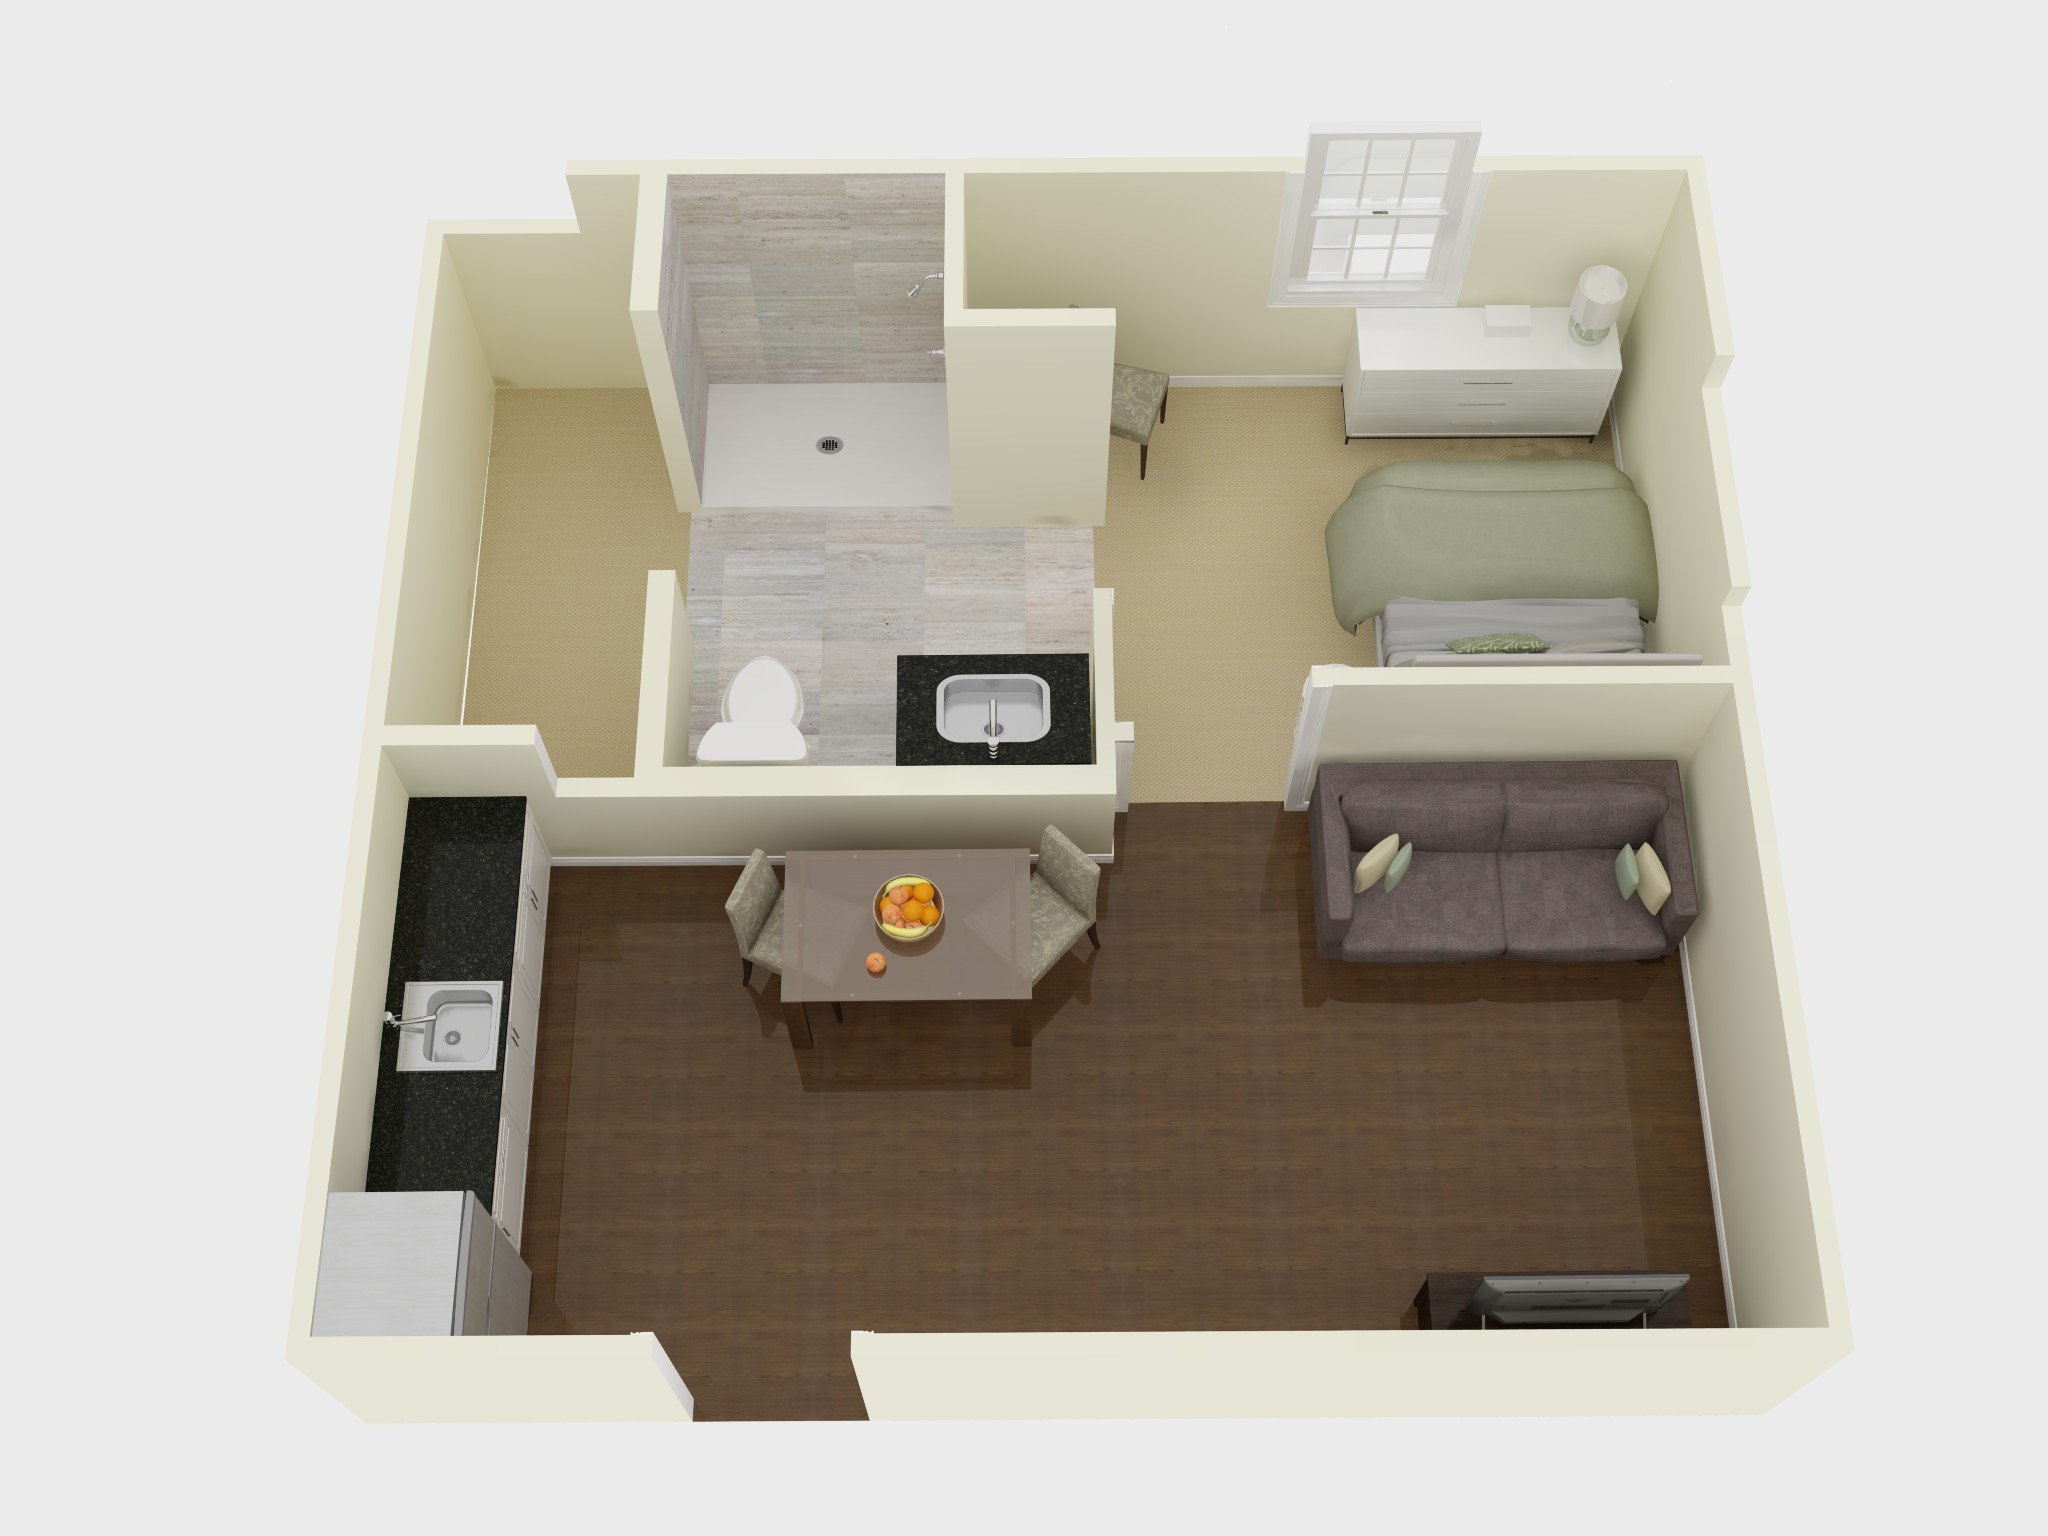 methodistVillageFS-rooms-3